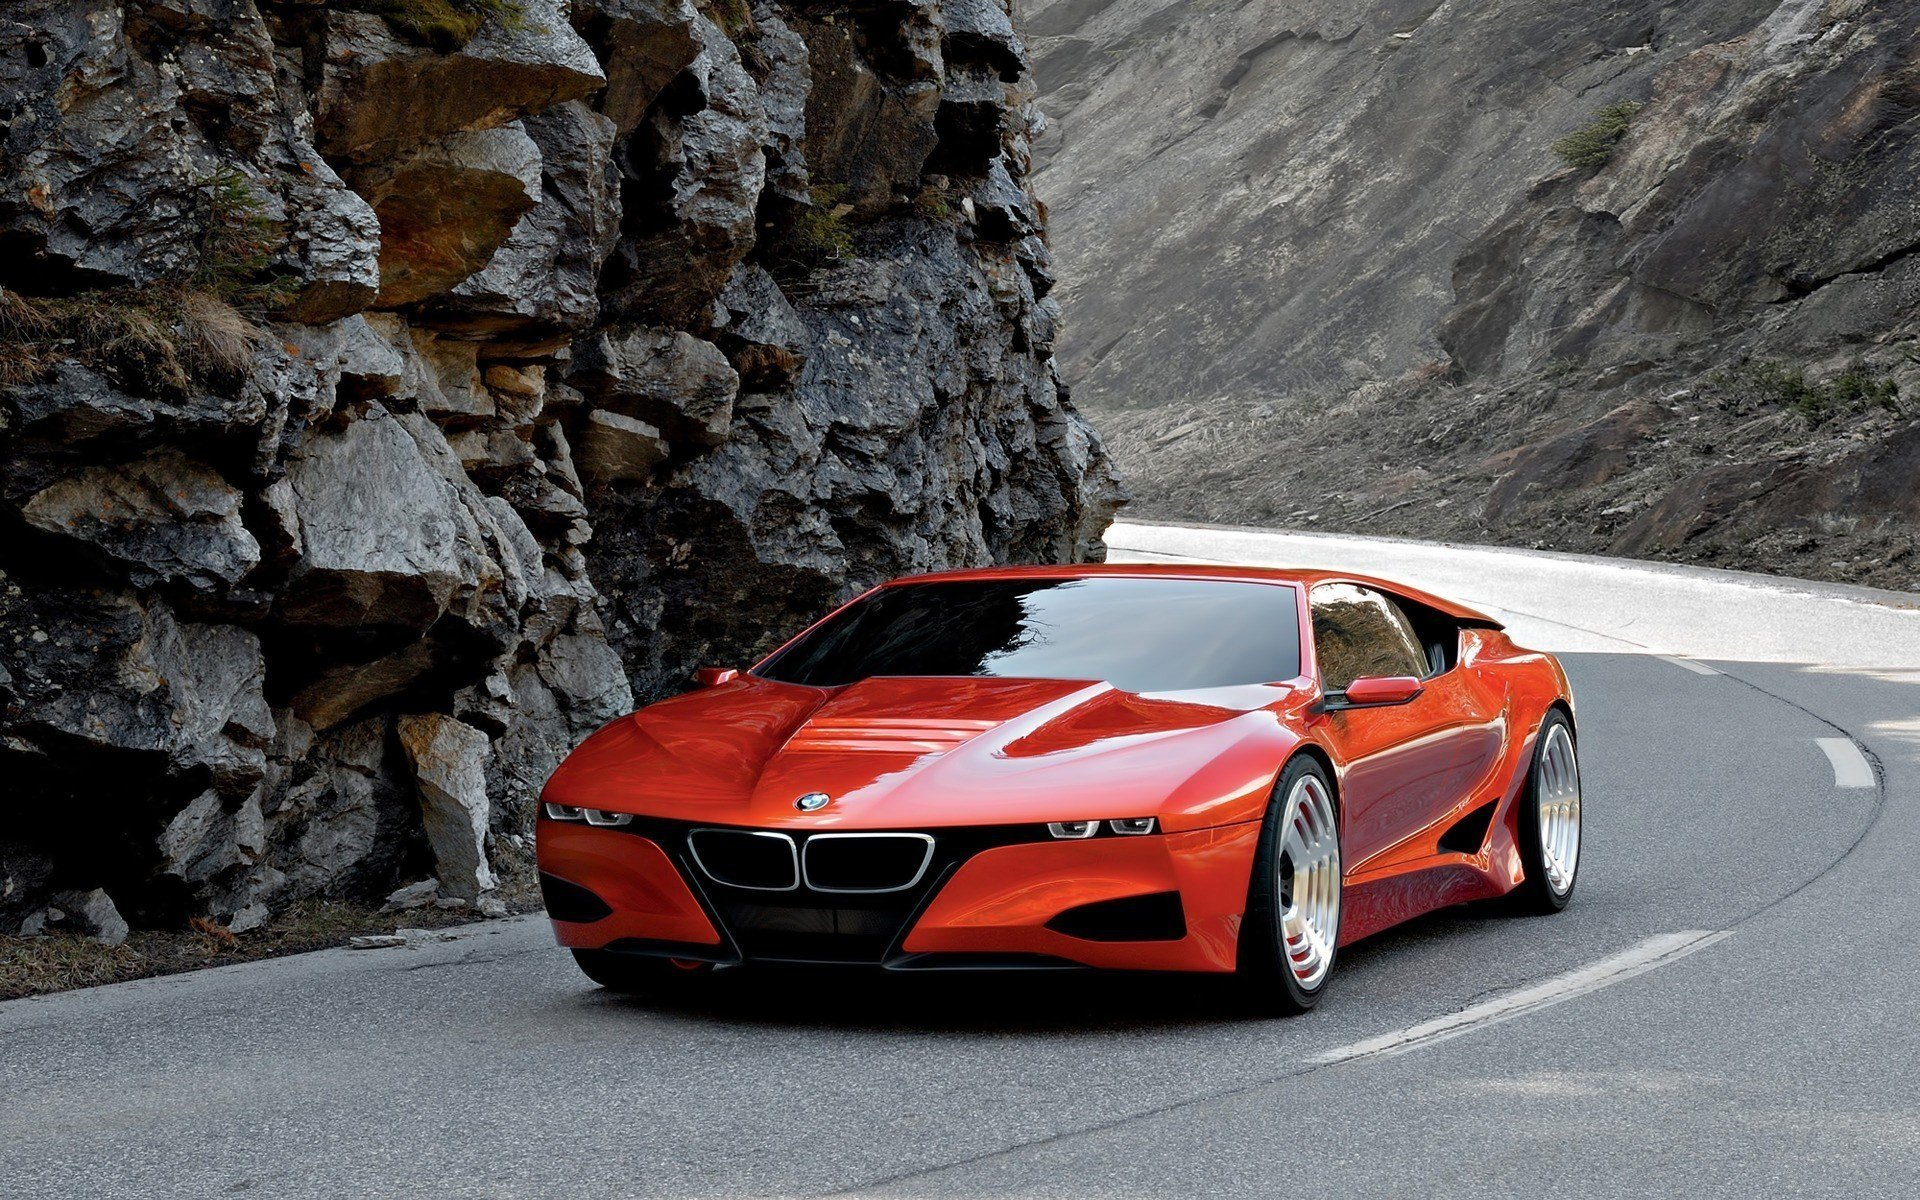 Latest Download Wallpaper Concept Red Sports Car Bmw Photo Cars Free Download